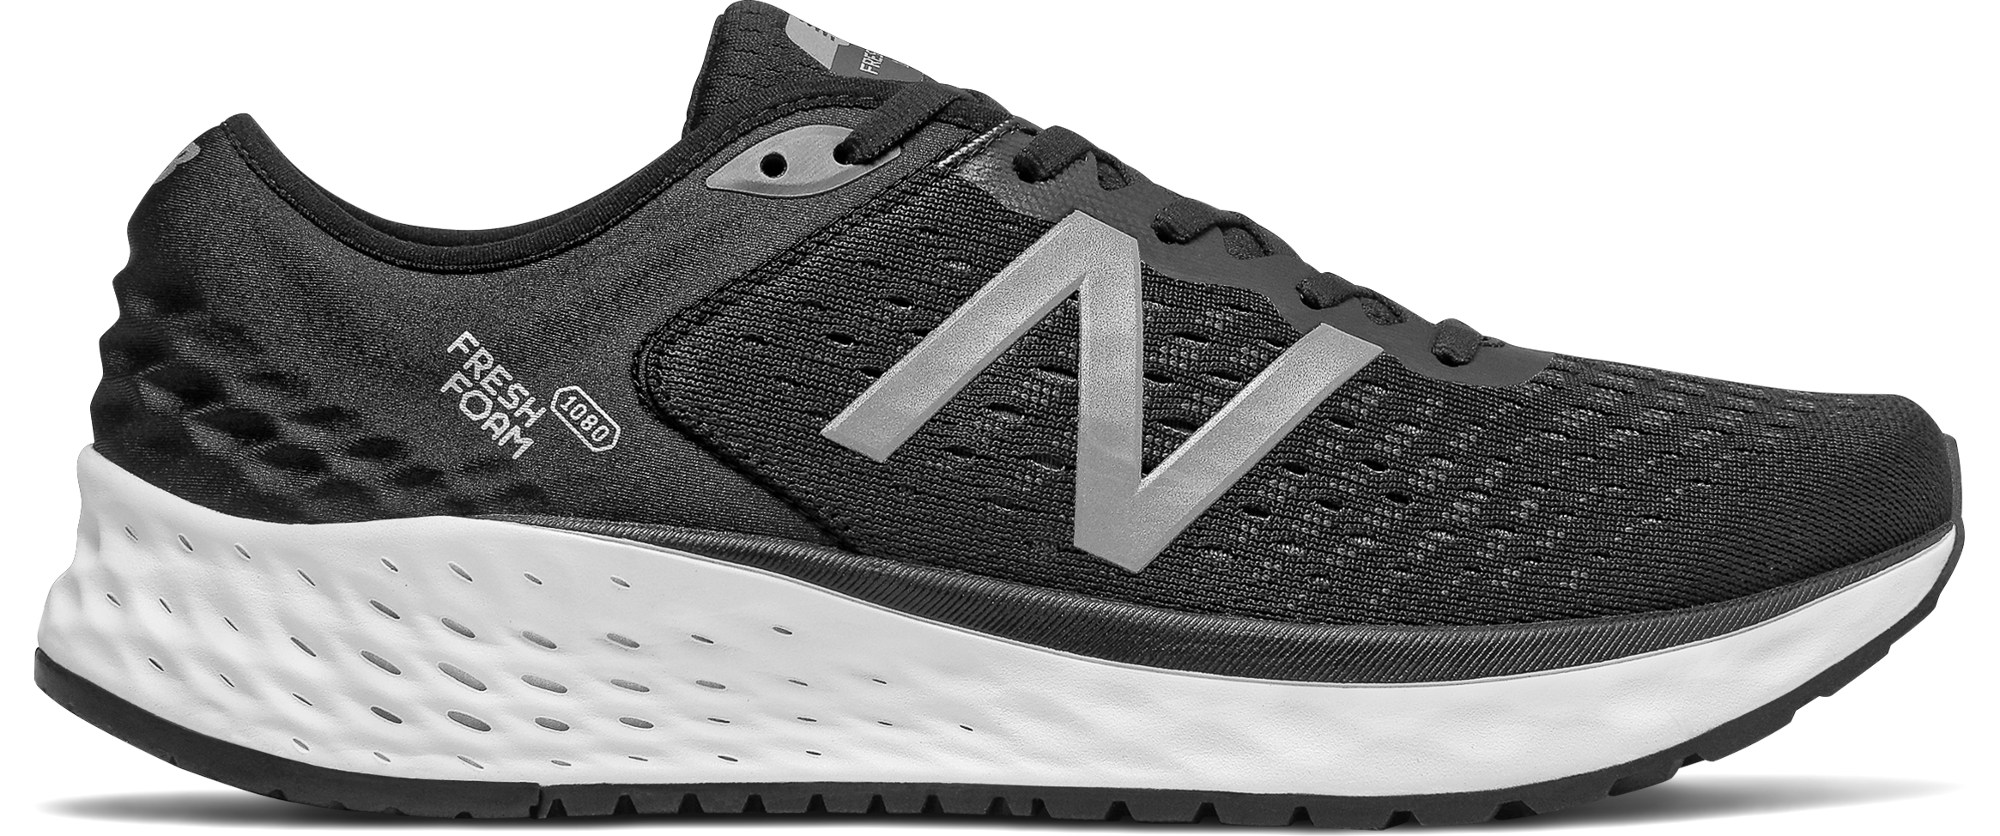 New Balance Fresh Foam 1080v9 Road-Running Shoes - Men's